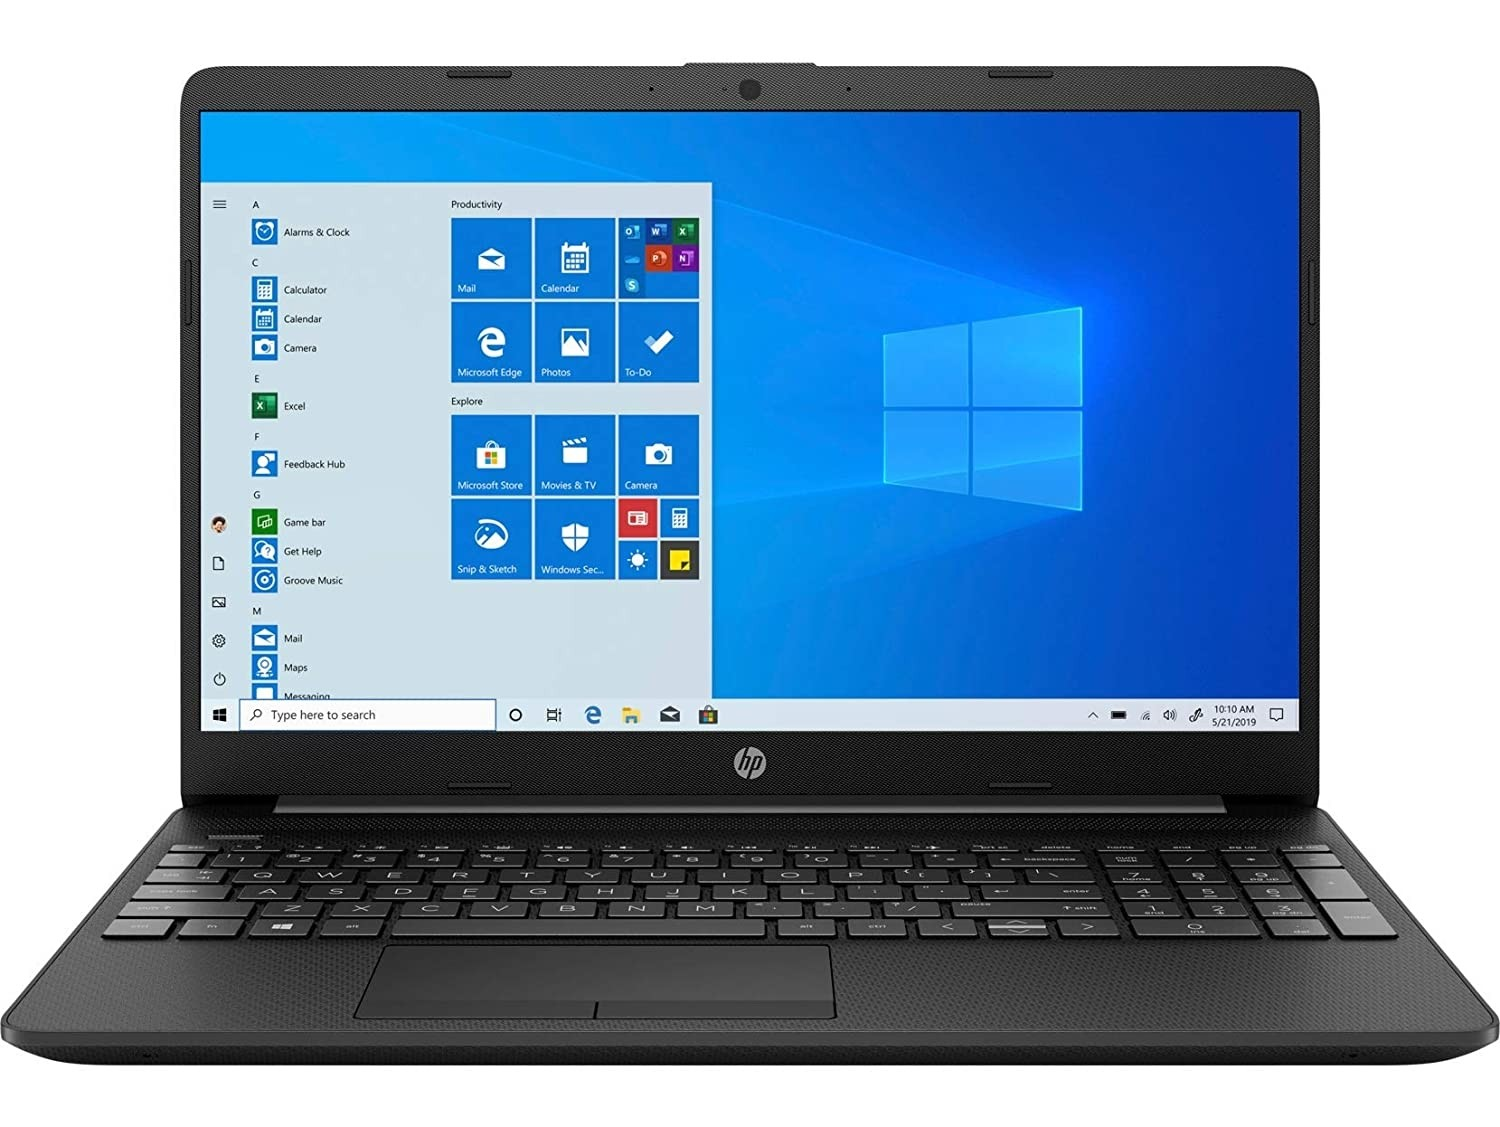 Refurbished laptops & desktops - HP 15 Thin & Light 15.6-inch FHD Laptop (Ryzen 5 3450U/8GB/1TB HDD/Vega 8 Graphics/Windows 10 Home/Jet Black/1.76kg), 15s-gr0010au